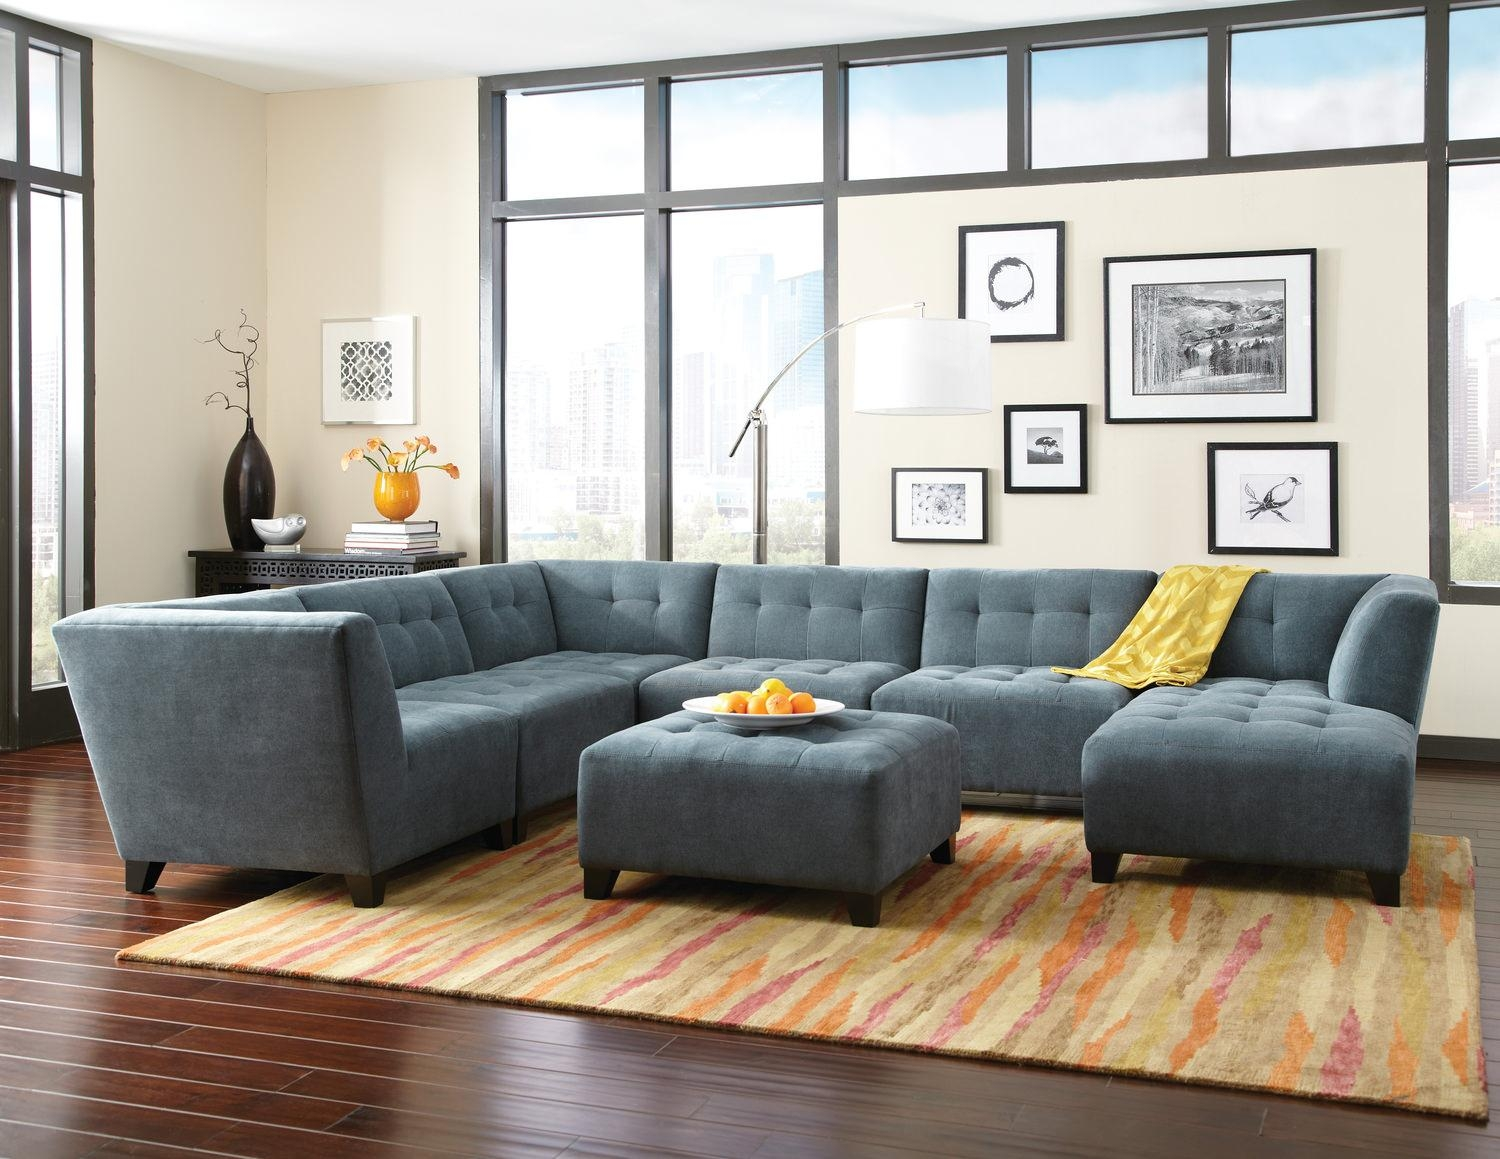 6 Piece Sectional Sofa | Best Sofas Ideas - Sofascouch with 6 Piece Sectional Sofas Couches